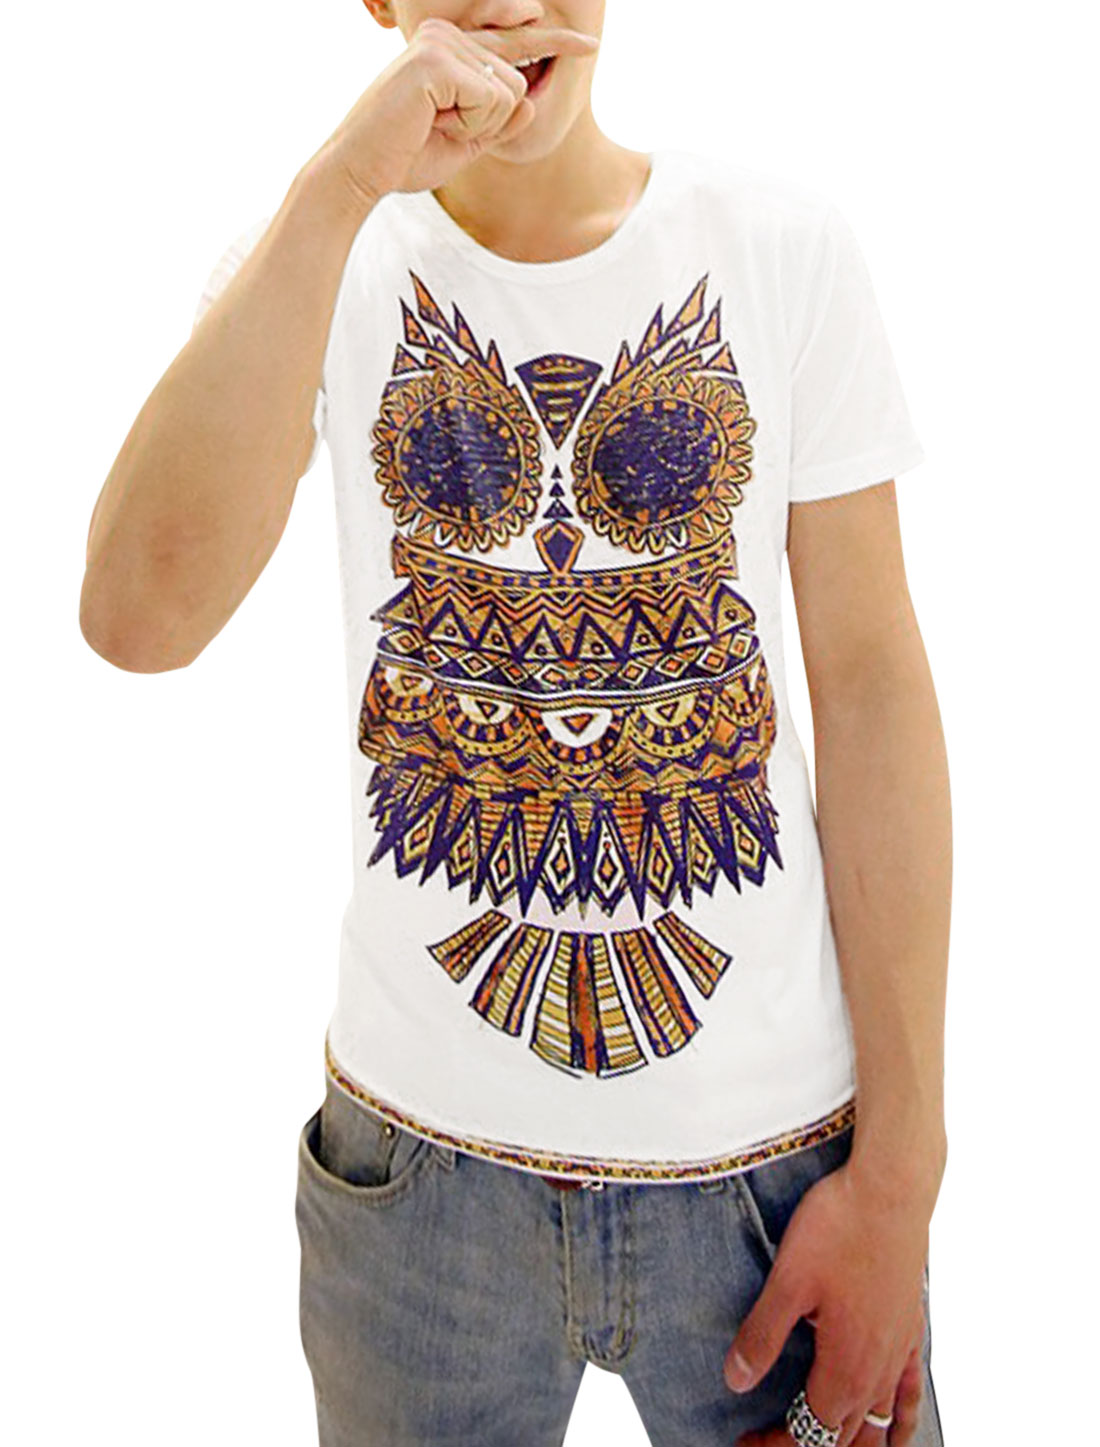 Man's Owl Print Short Sleeve Round Neck Tee Shirt White M